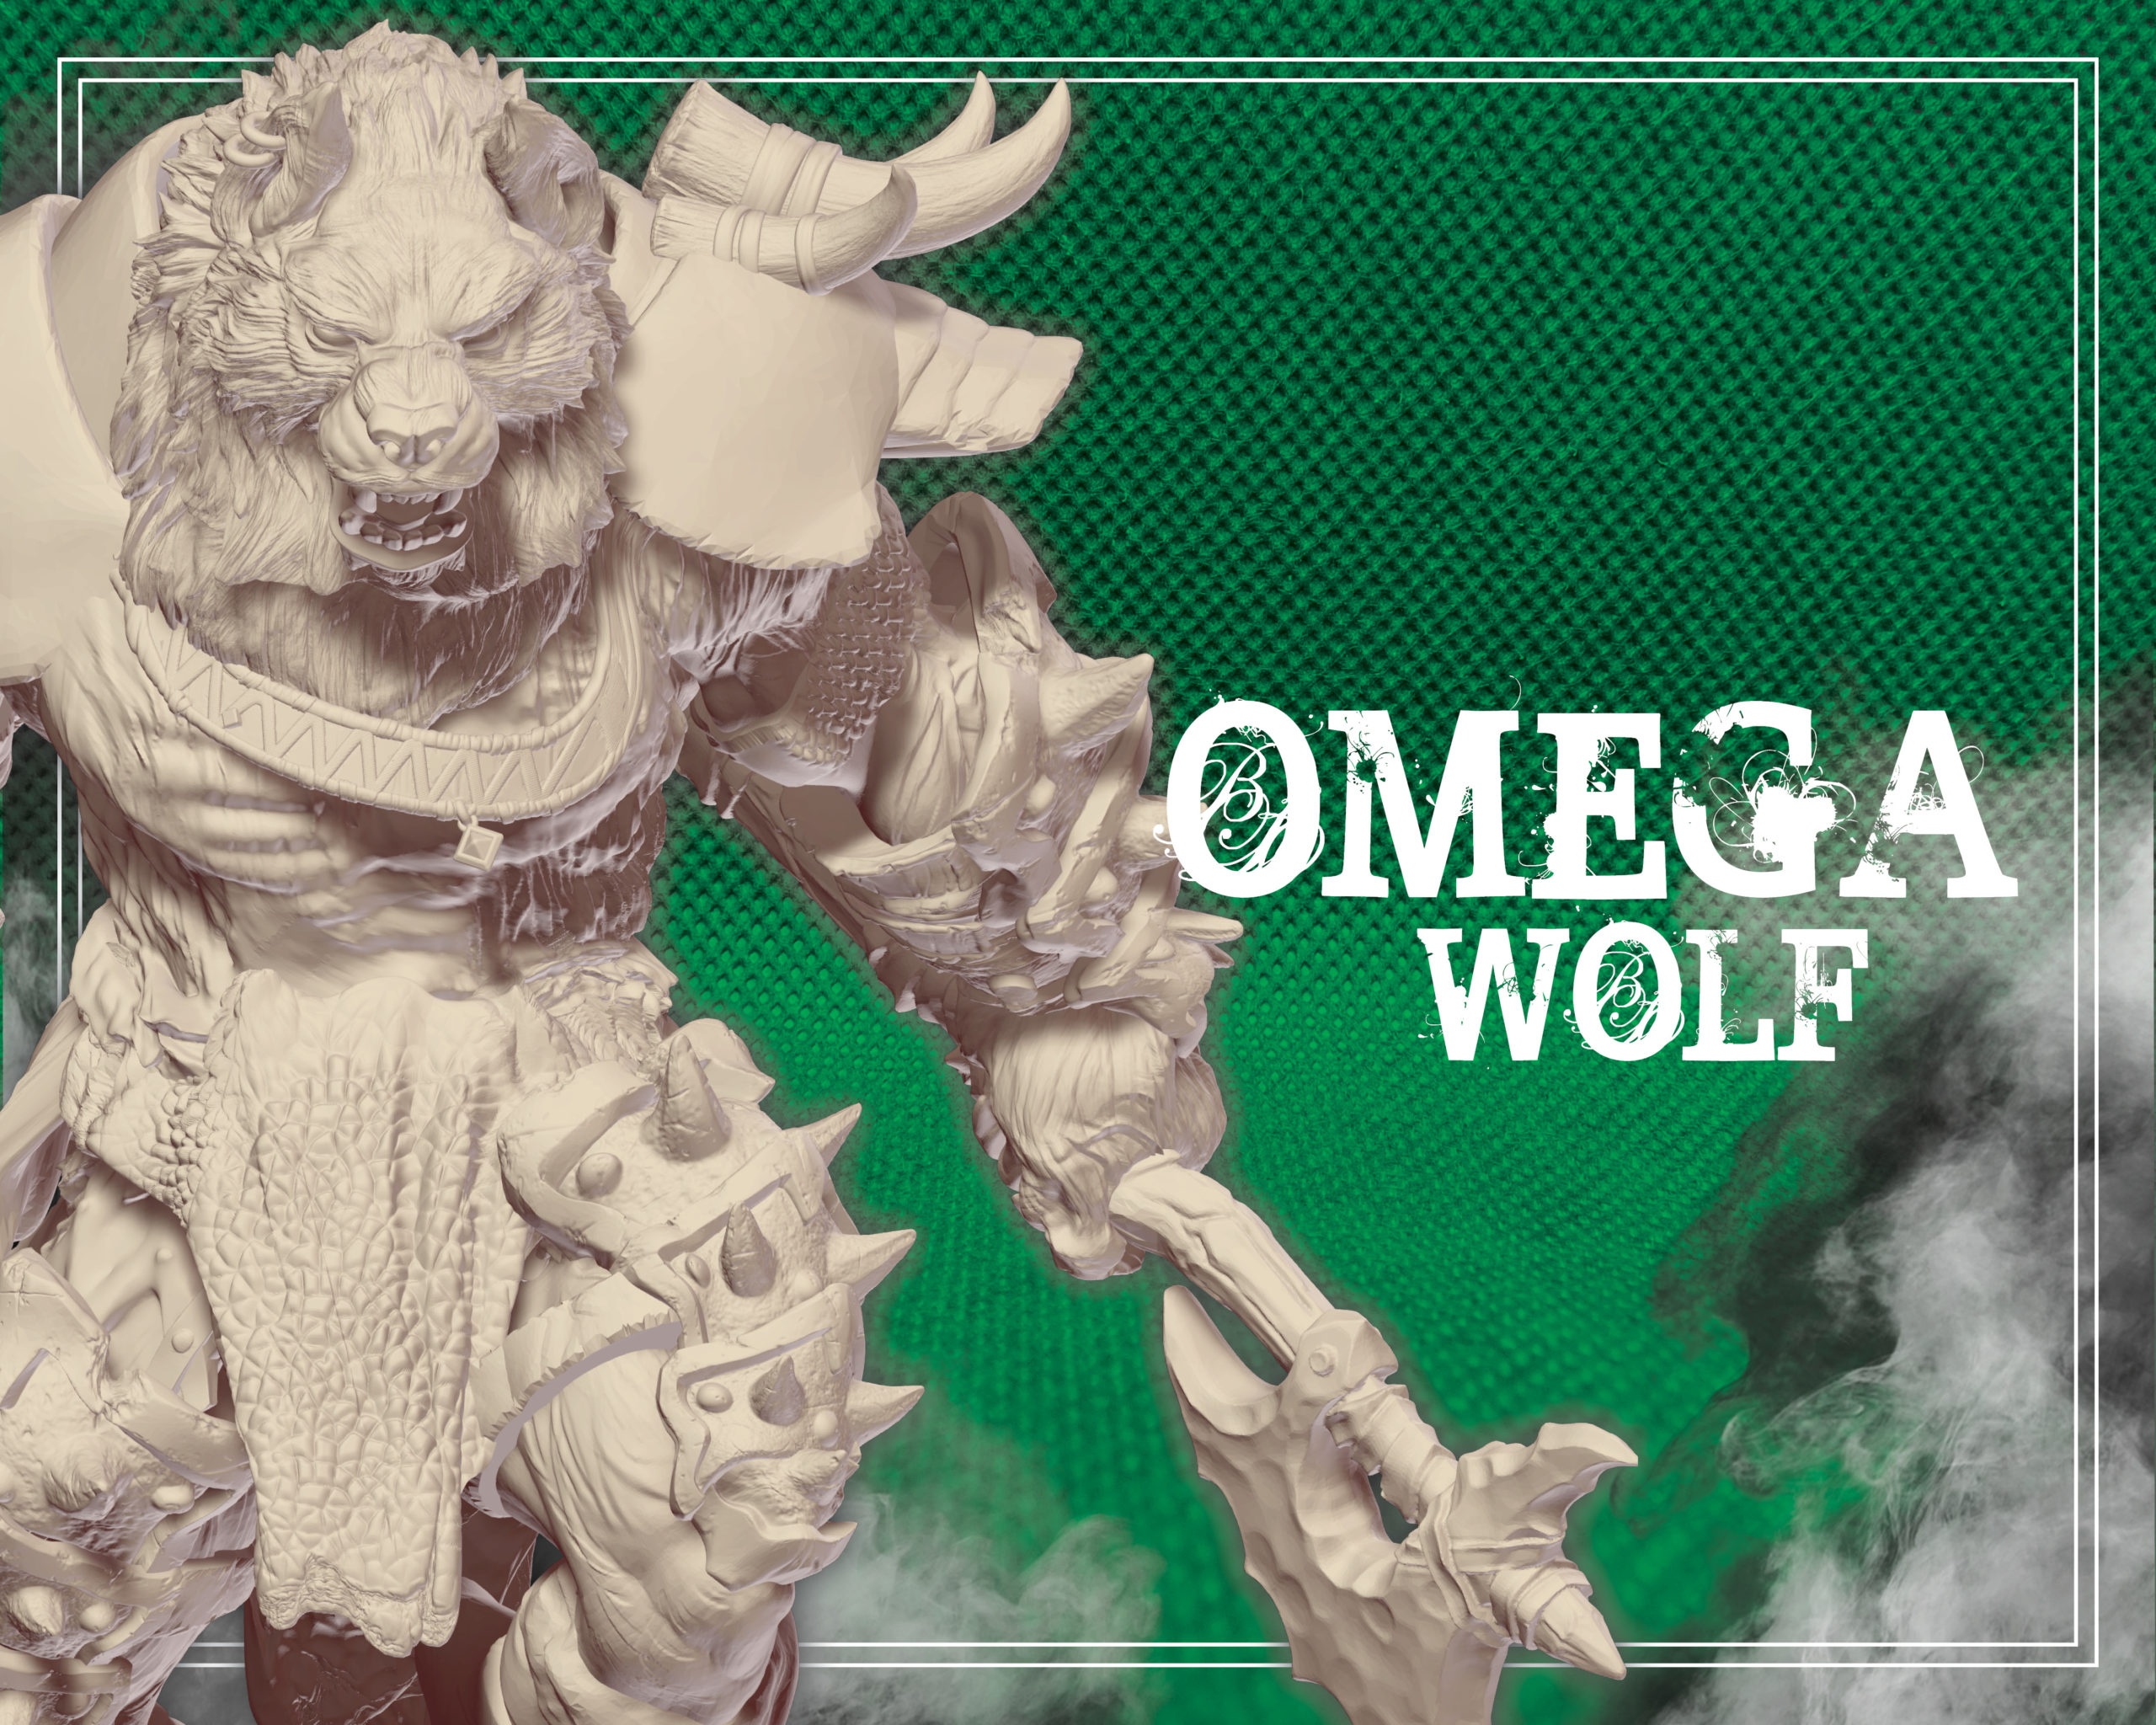 tier omega wolf wolfmaker3d gift subscribe patreon